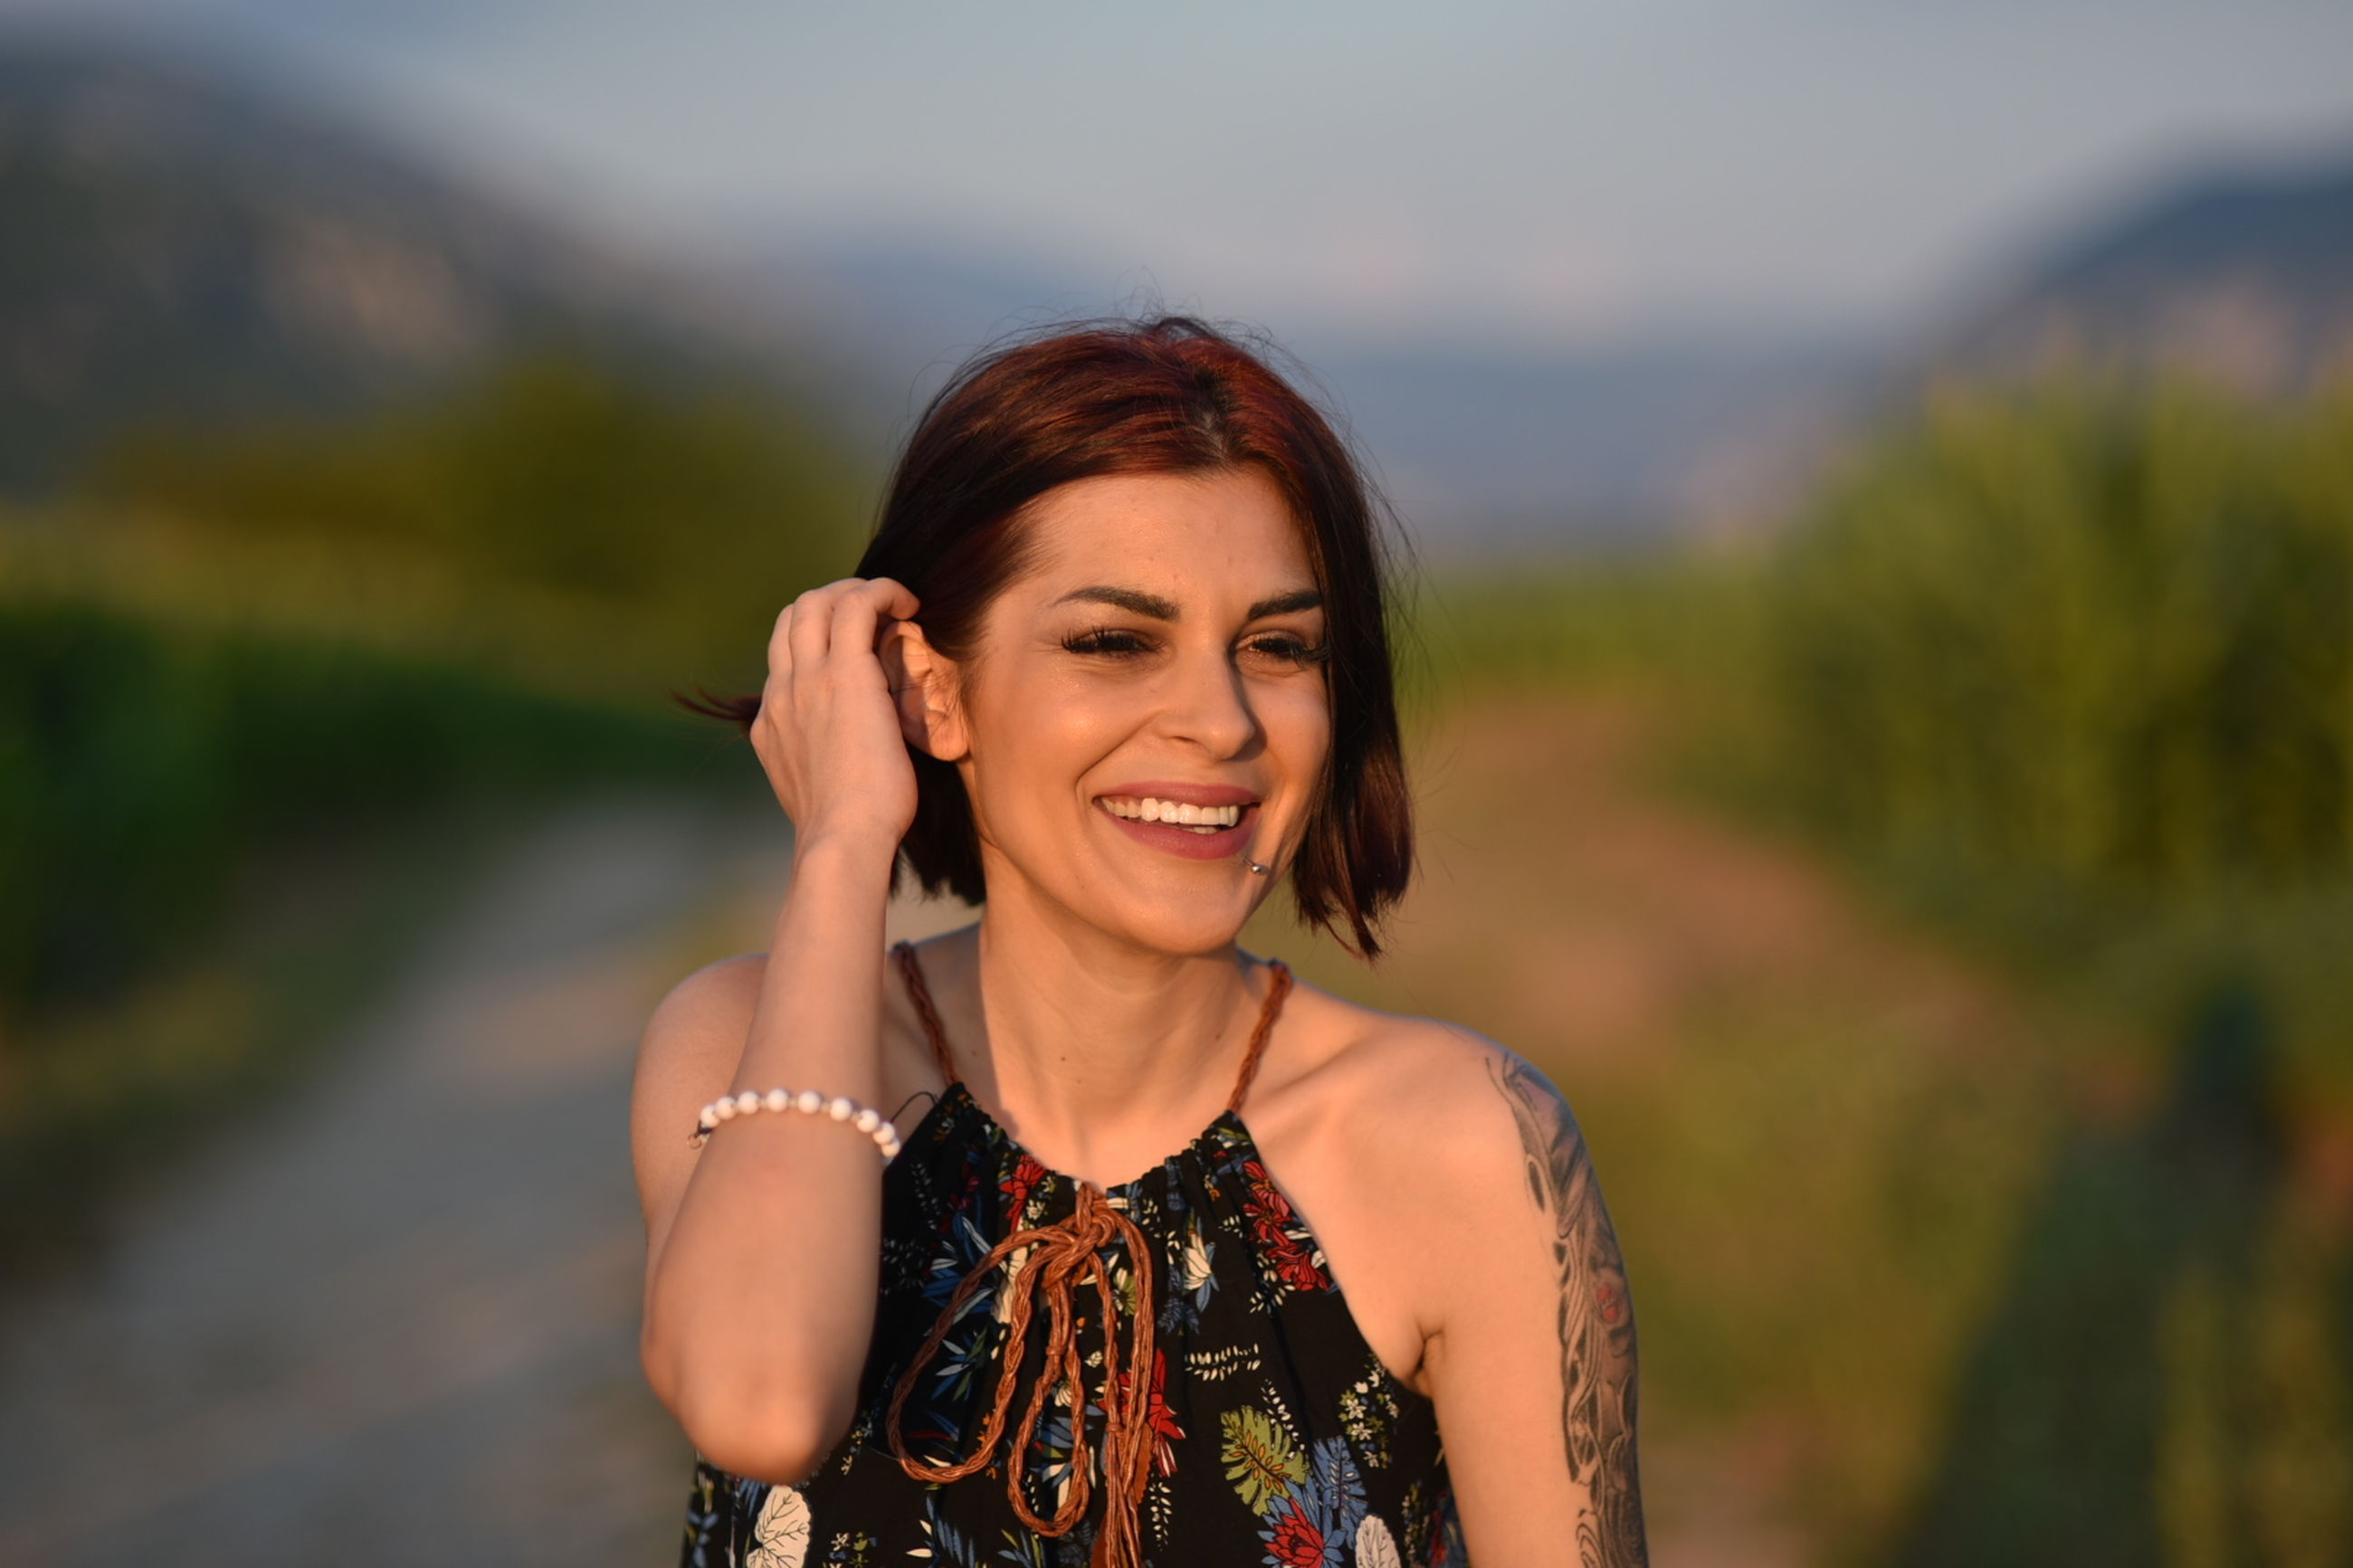 adult, women, smiling, one person, portrait, happiness, emotion, female, nature, portrait photography, human face, person, cheerful, smile, landscape, teeth, dress, lifestyles, photo shoot, young adult, clothing, hairstyle, land, jewelry, beauty in nature, rural scene, brown hair, looking at camera, front view, outdoors, environment, fashion accessory, enjoyment, travel, fashion, waist up, sky, necklace, positive emotion, leisure activity, summer, standing, focus on foreground, copy space, arts culture and entertainment, relaxation, looking, headshot, vacation, trip